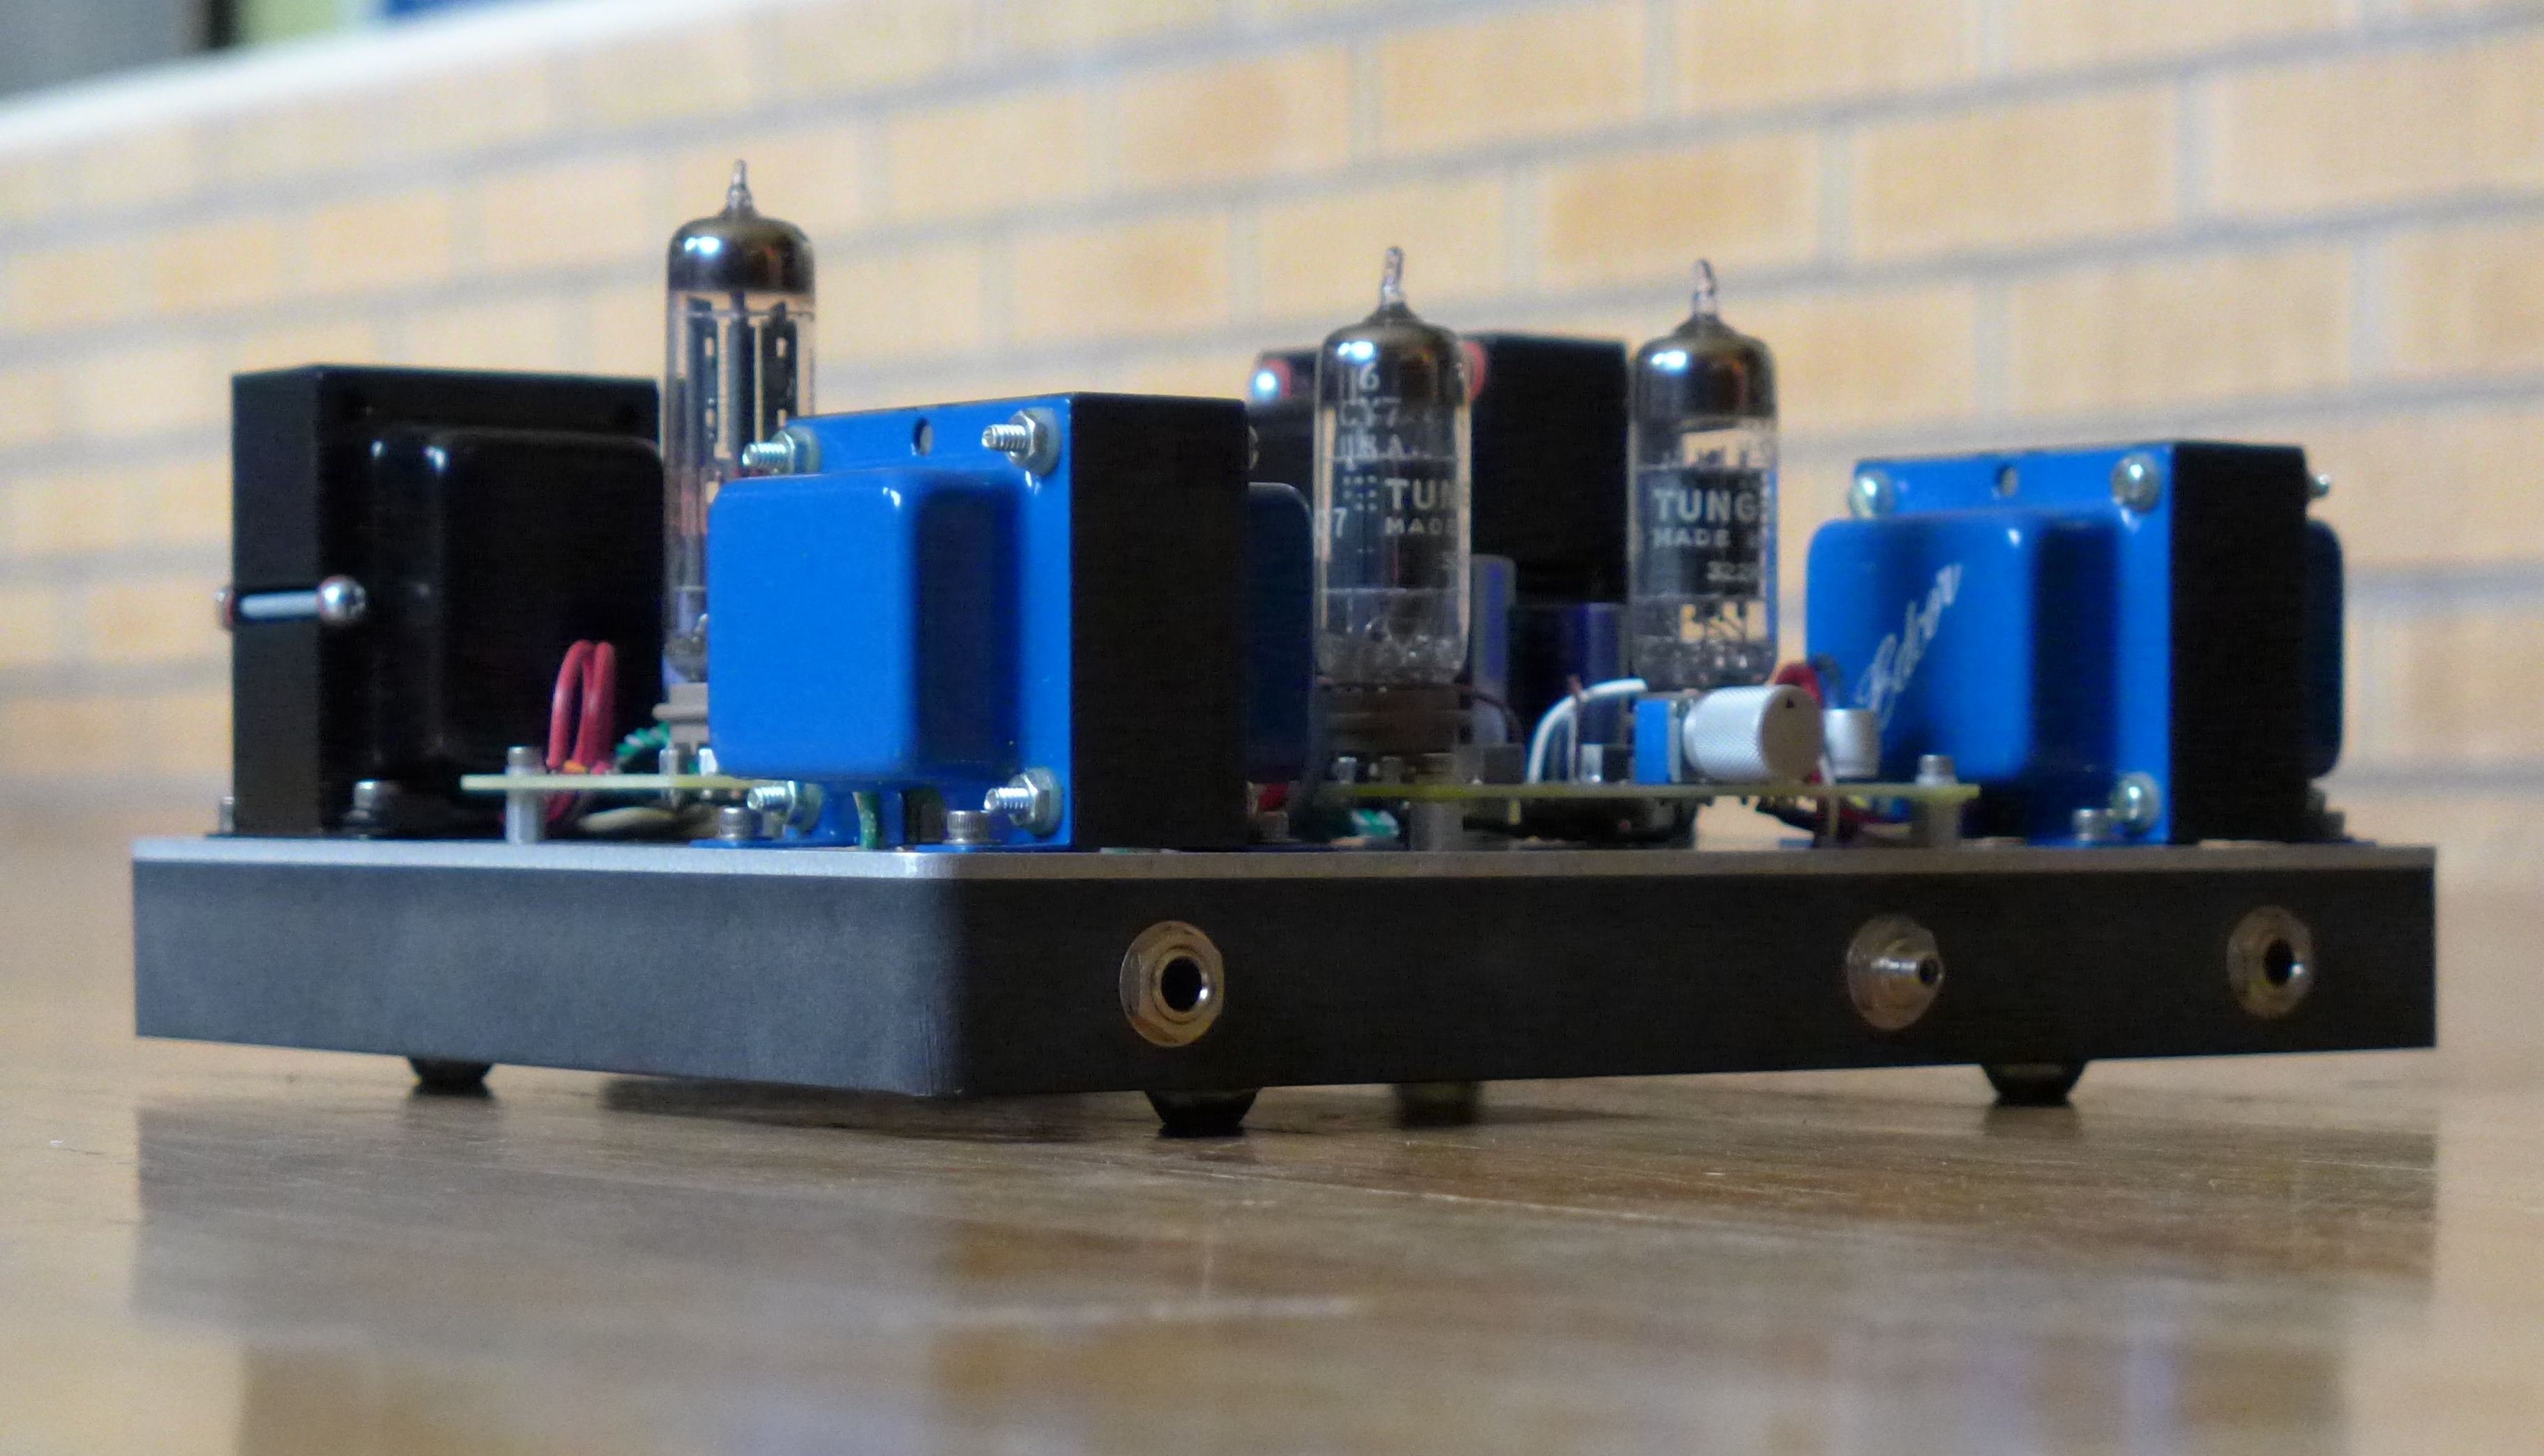 6CY7 dual triode valve amplifier - Electronics-Lab